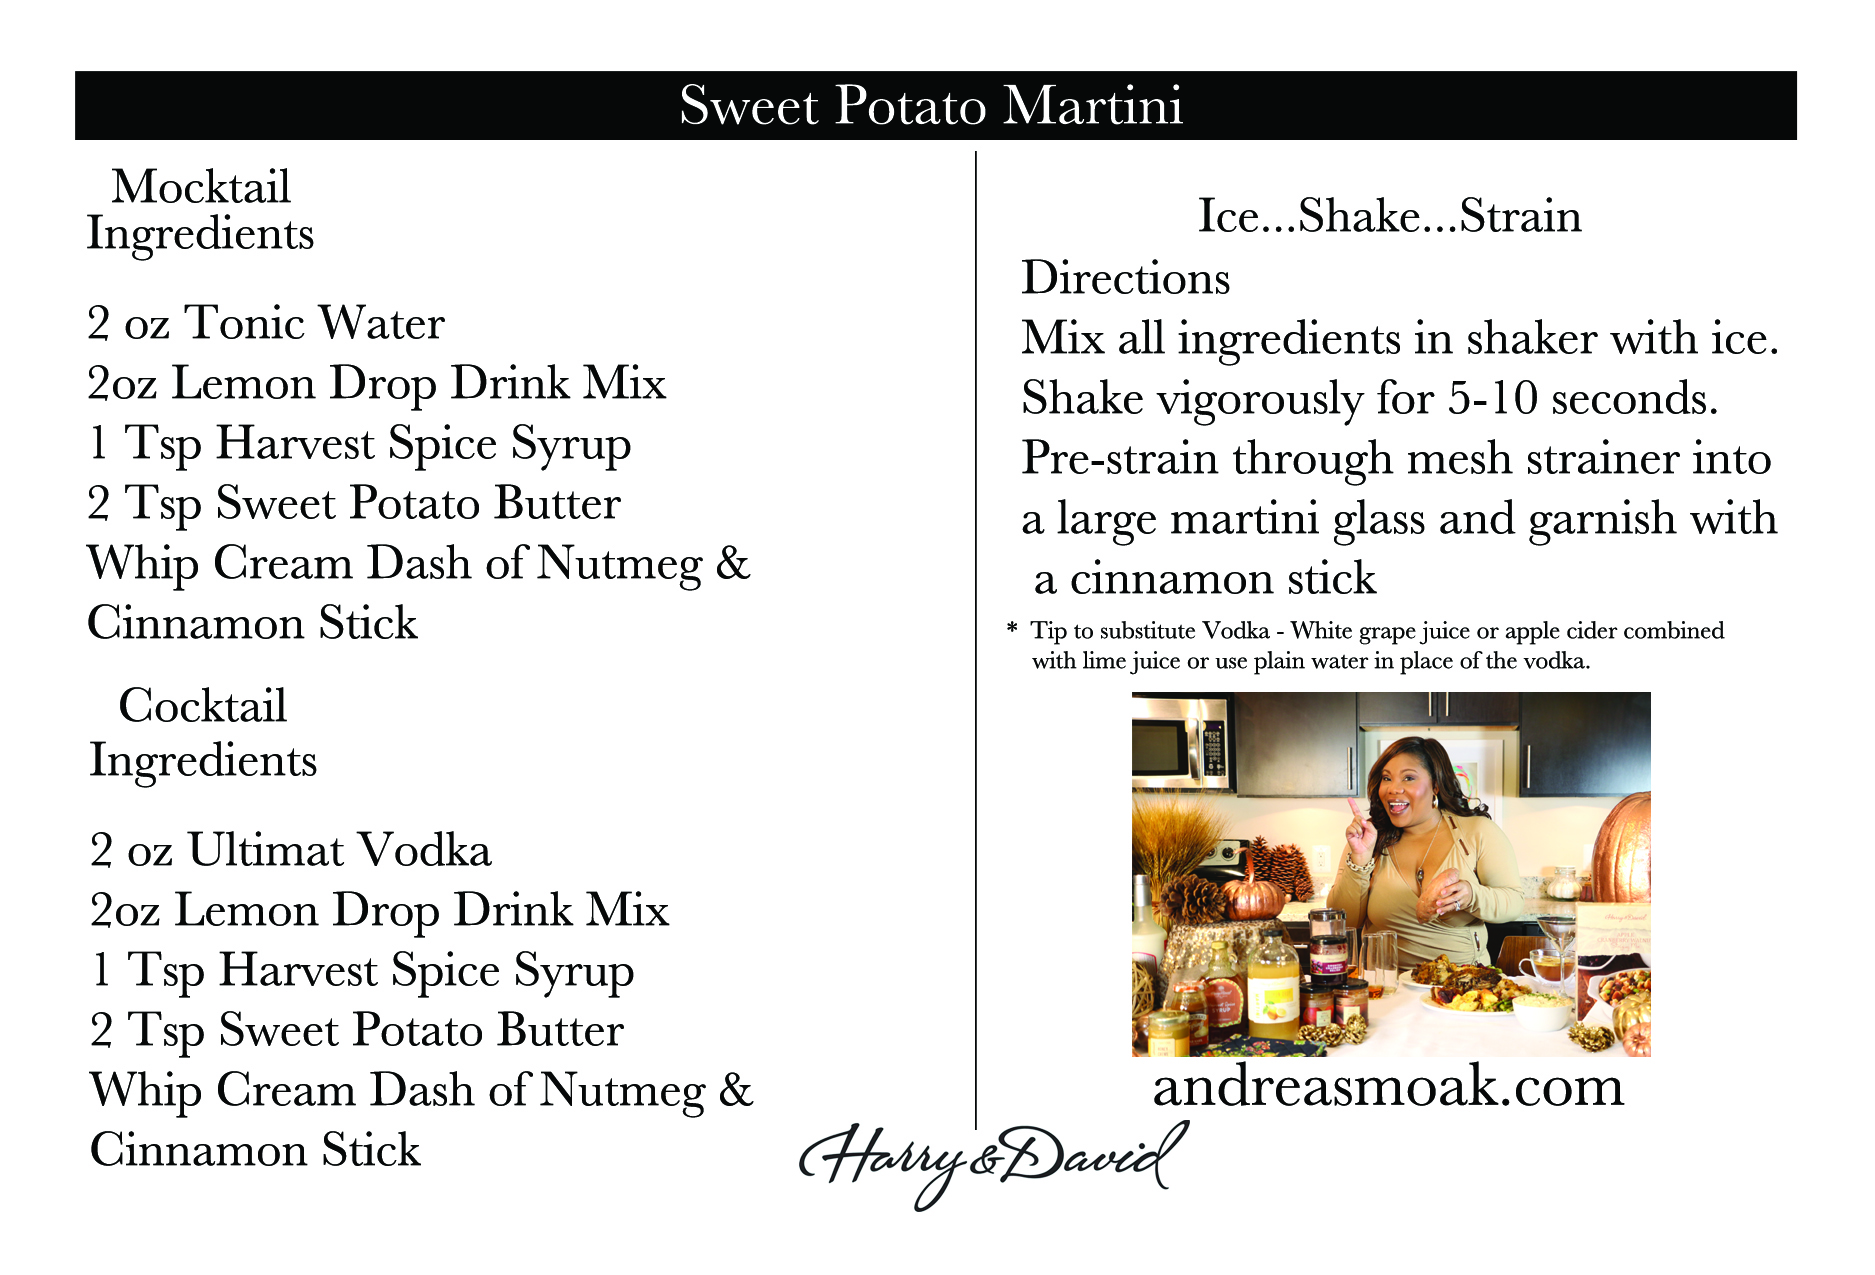 Sweet_Potato_Recipe_Card_Ingredients.jpg